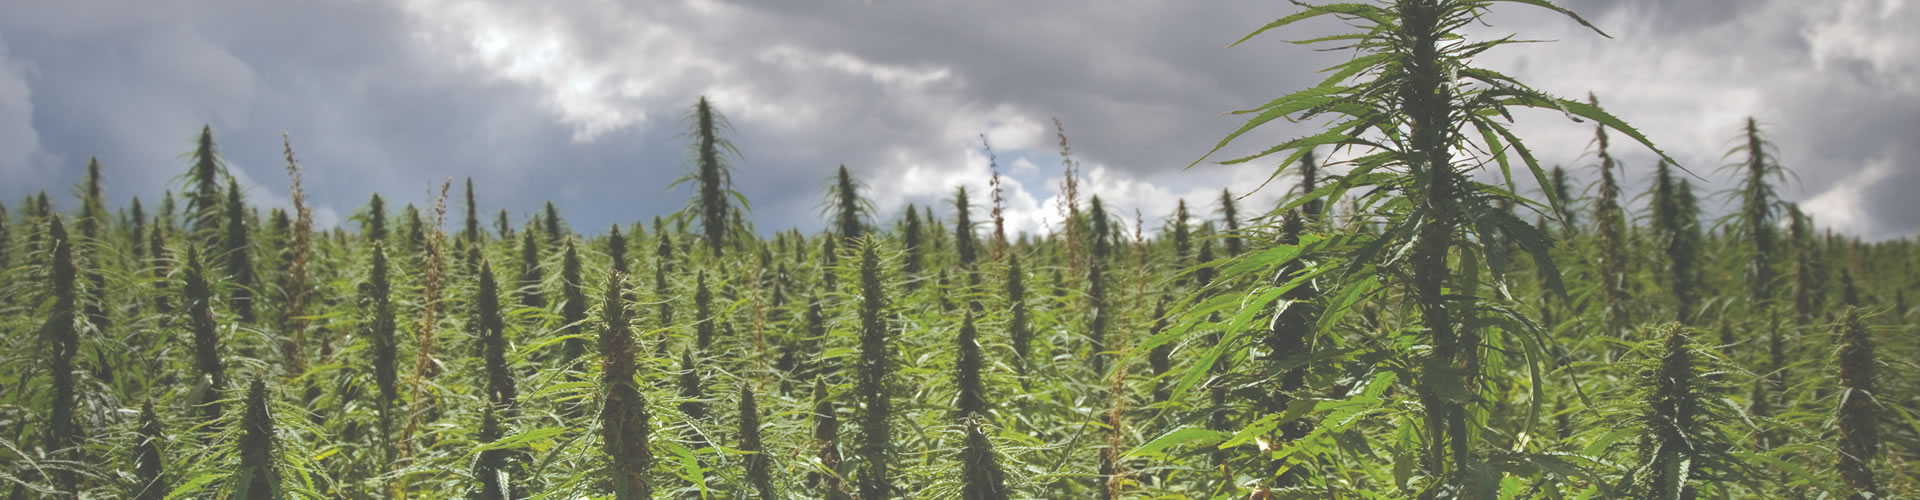 Industrial Hemp Cultivation Services